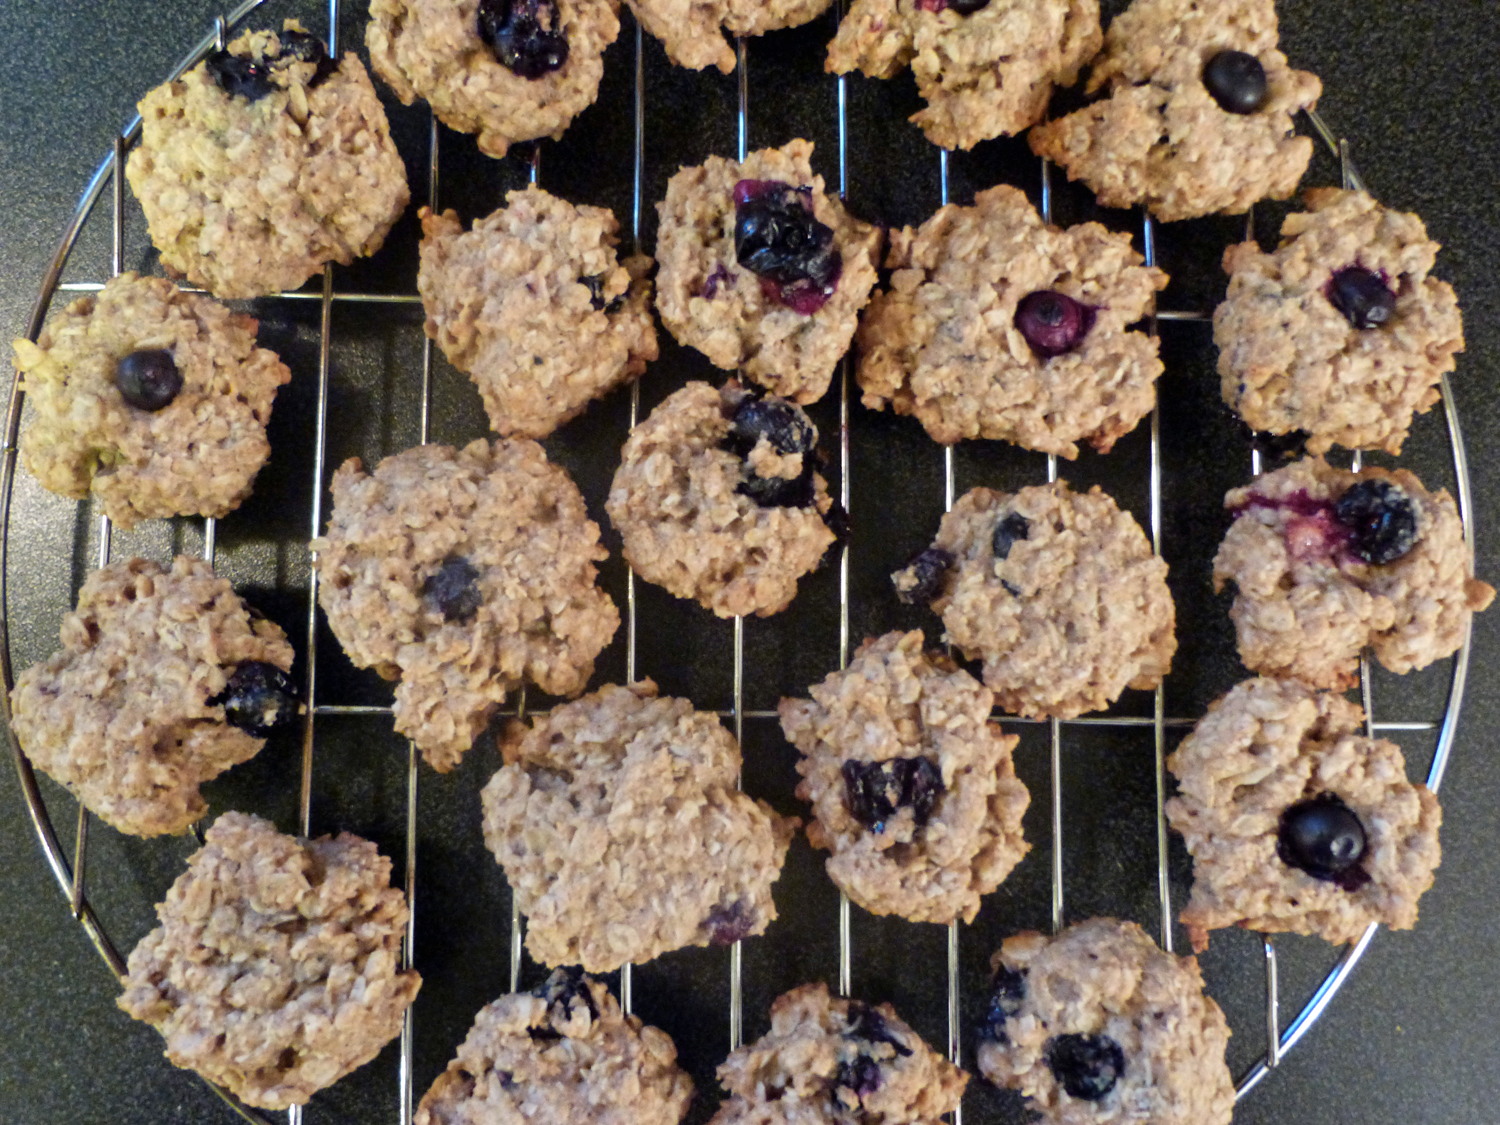 Spoonfed Baby Food Blueberry Oat Cakes.jpg